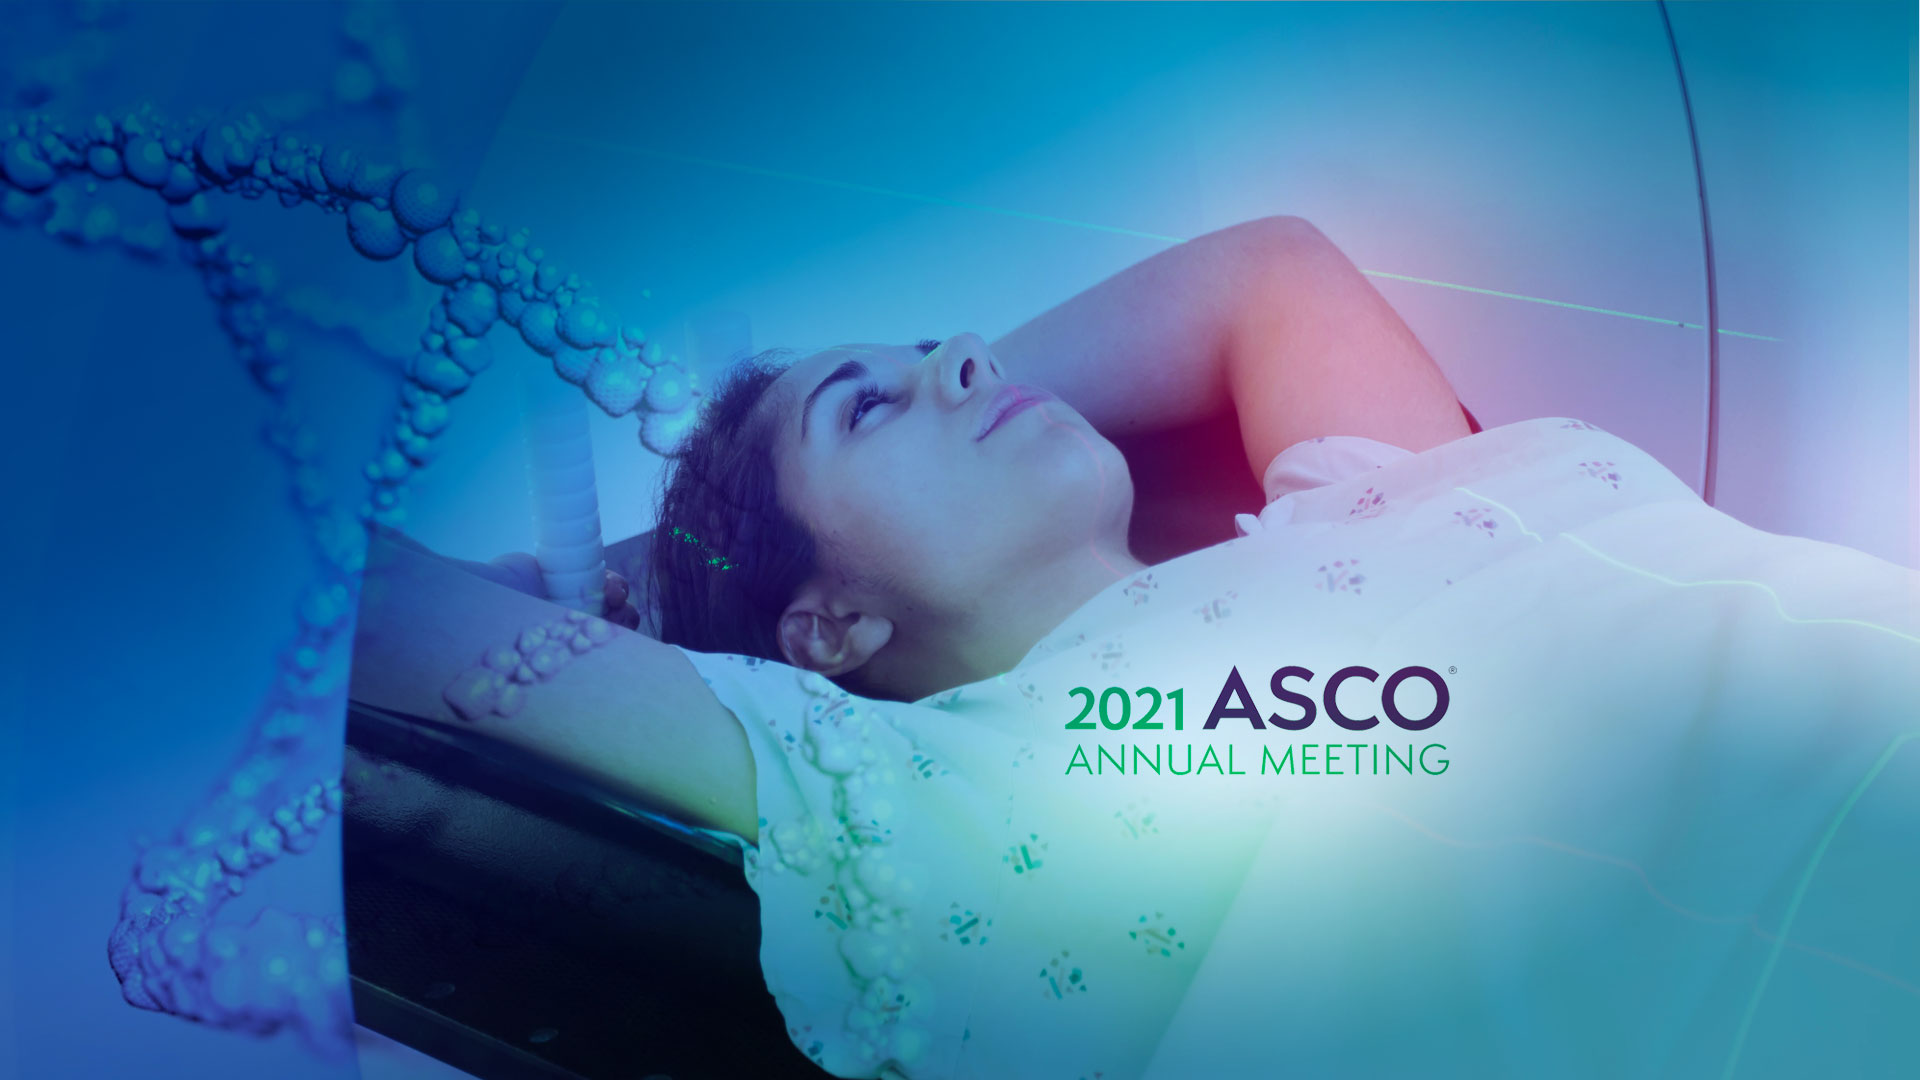 ASCO 2021 - Breast cancer screening for carriers of ATM, CHEK2, and PALB2 pathogenic variants: A comparative modeling analysis.